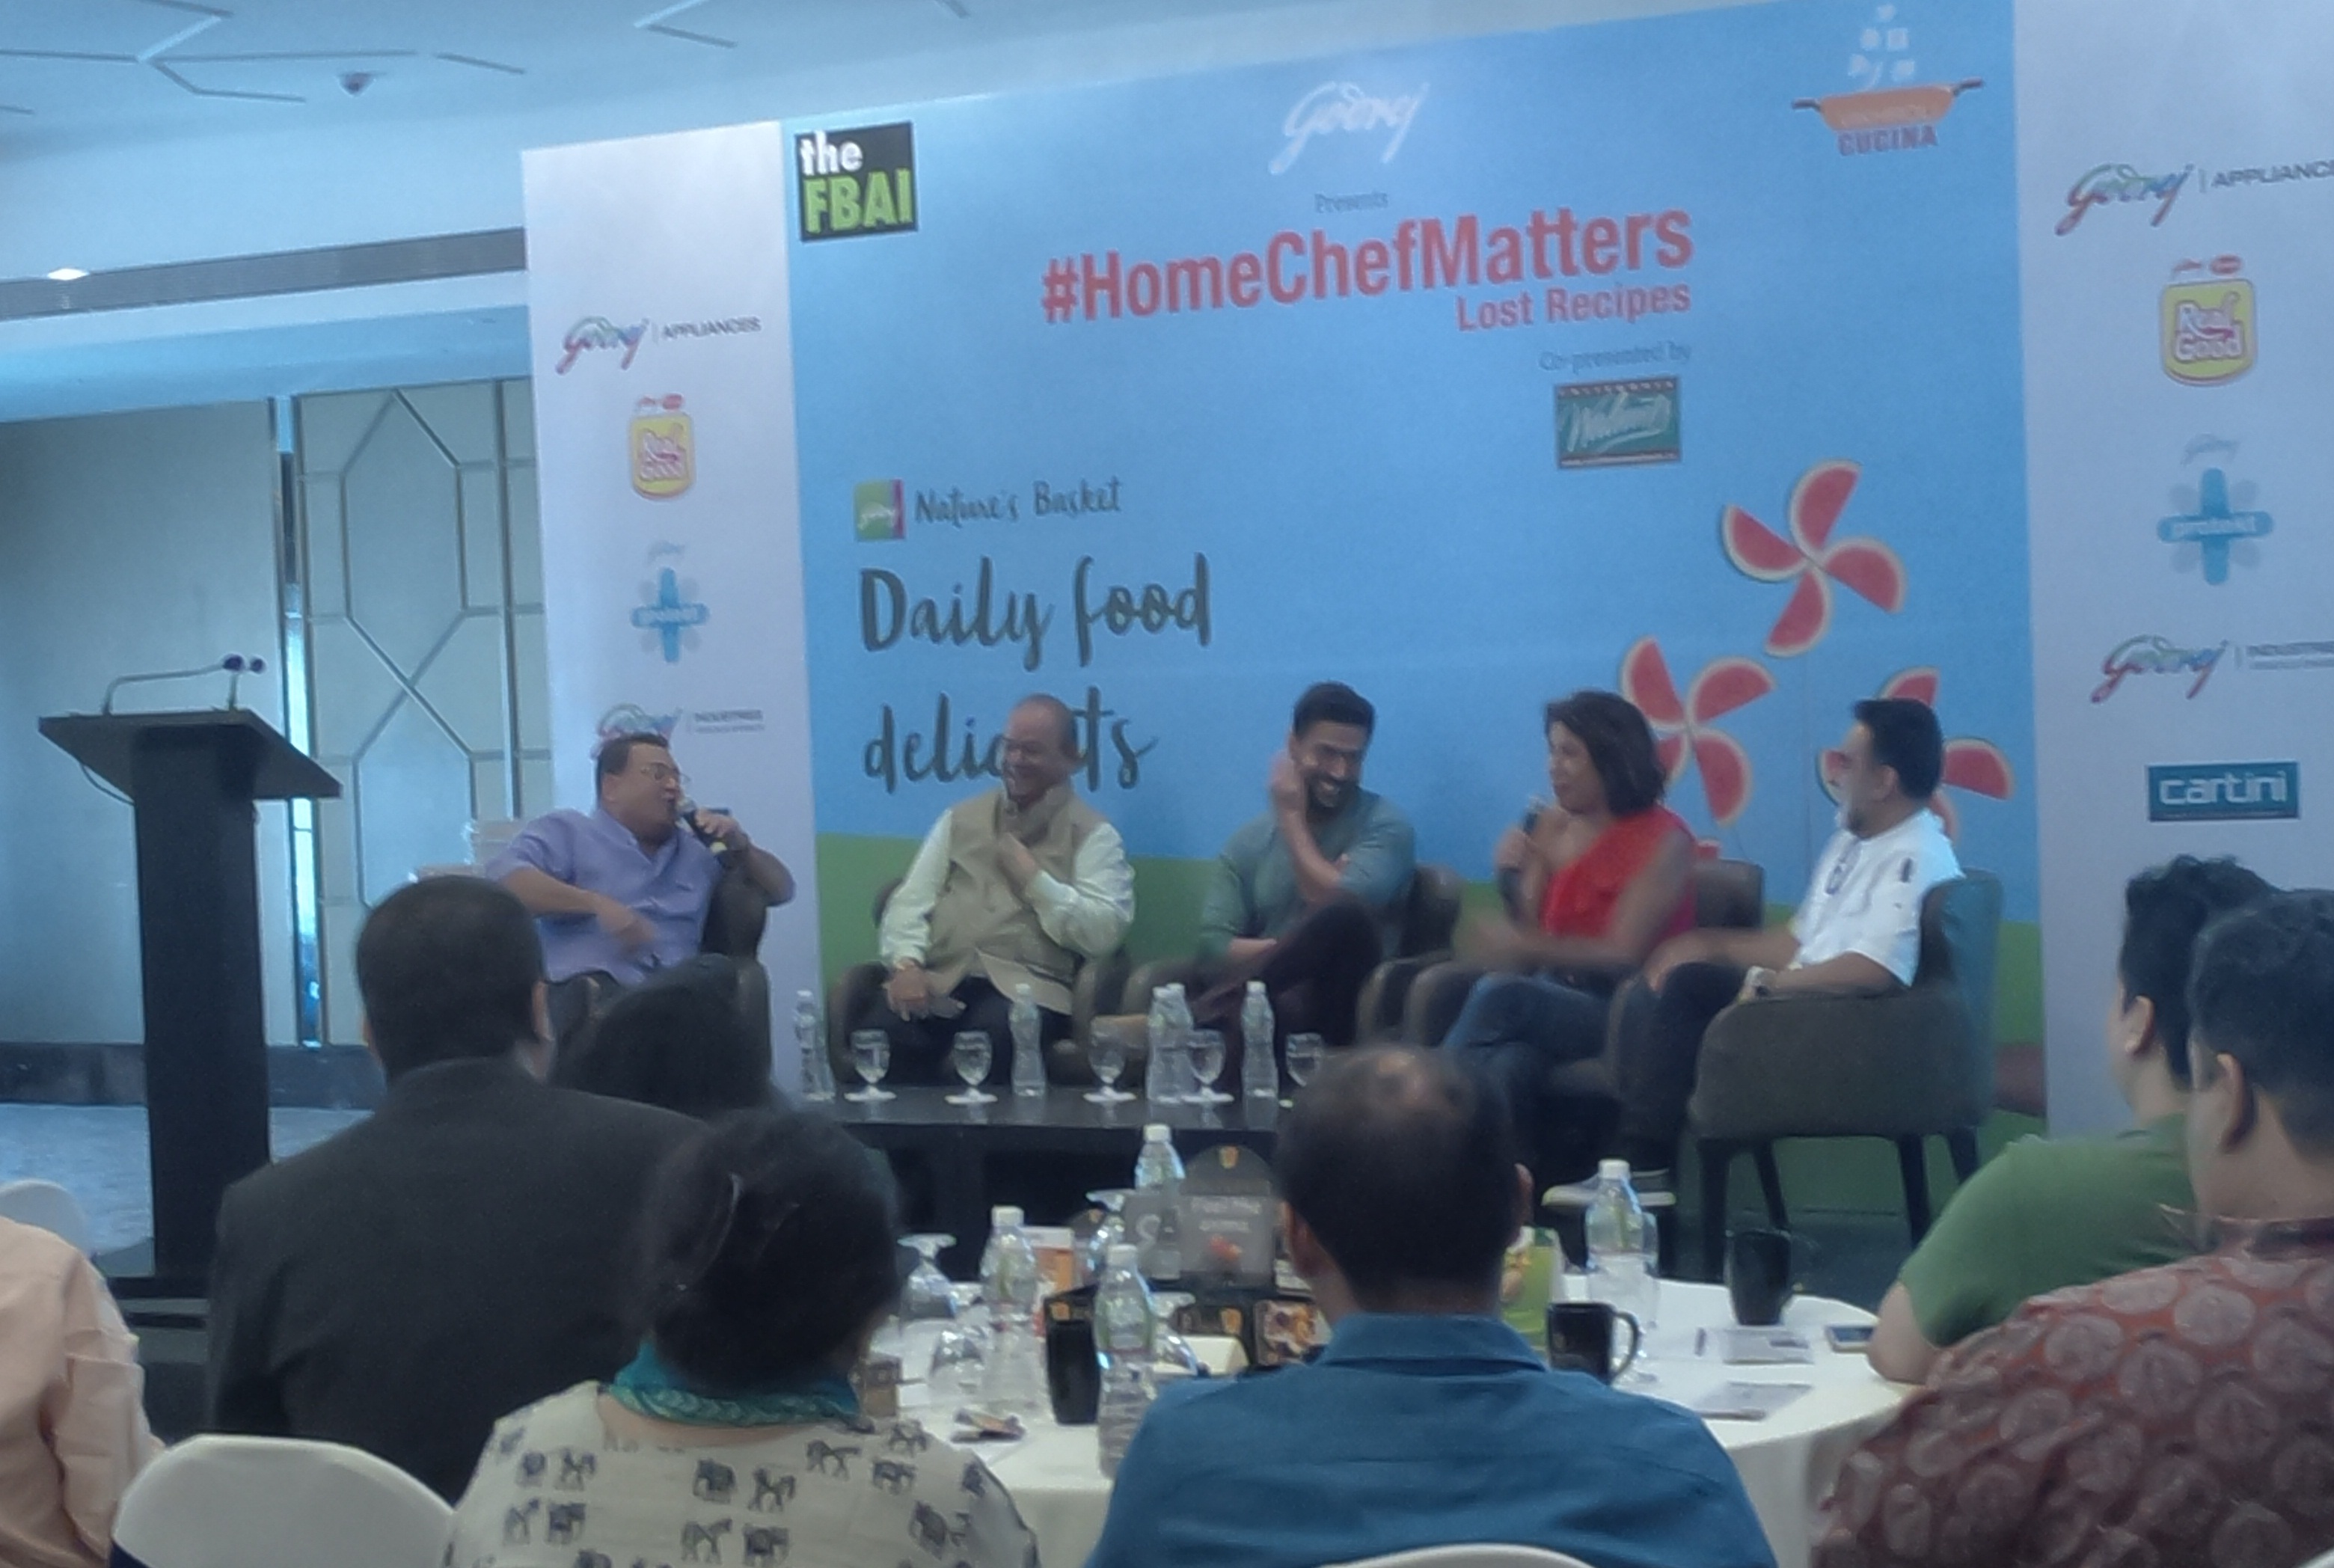 Home Chef Matters|Indian culinary scene,the rise of home chefs